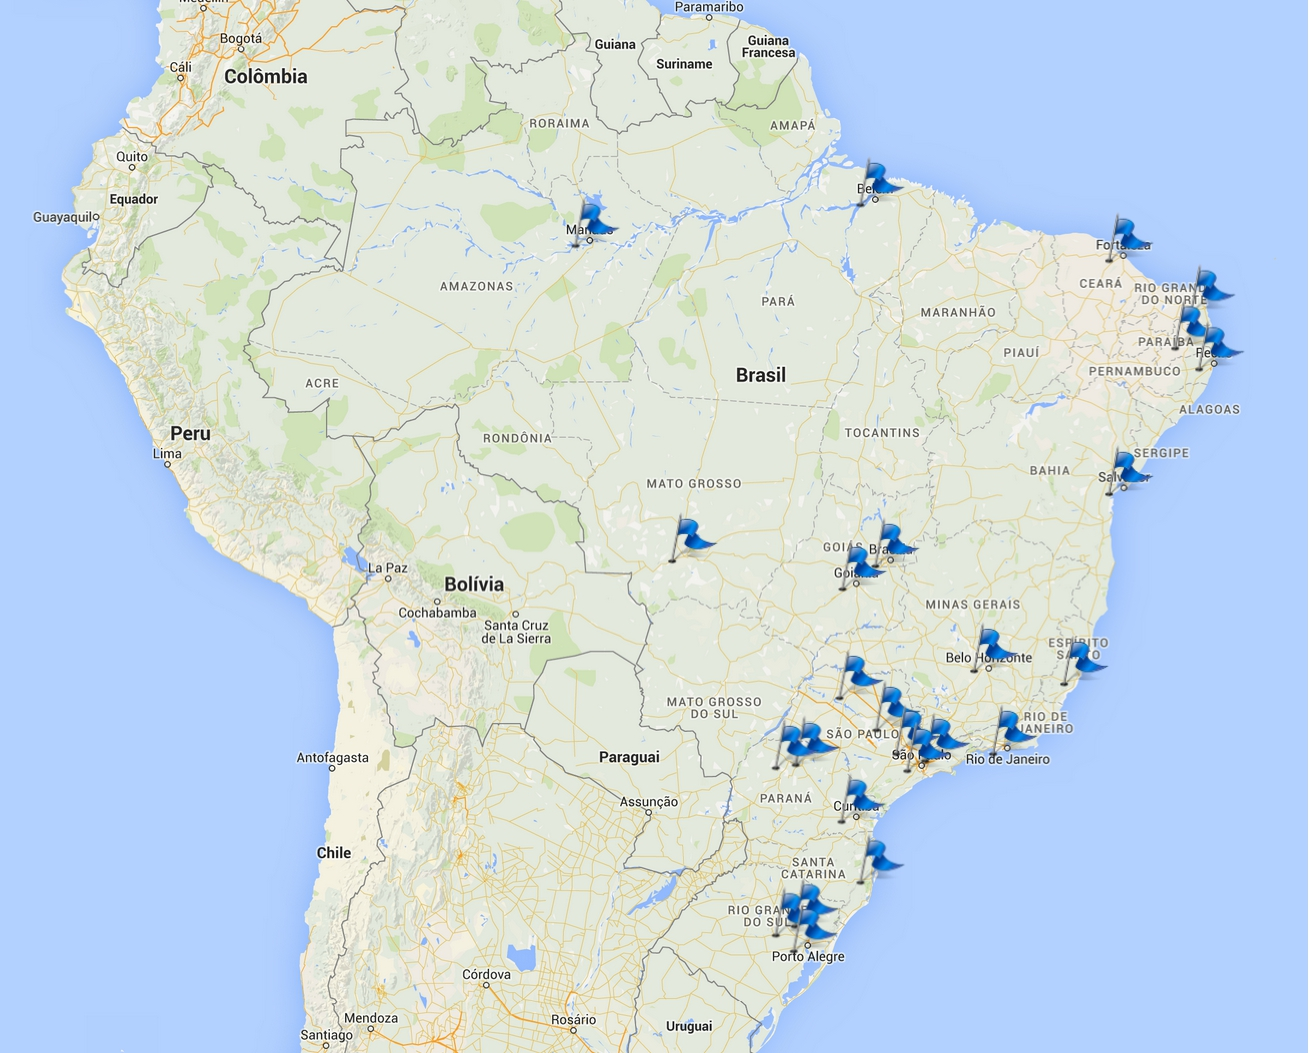 PTT.br 2015-25 Locations in Operation Each